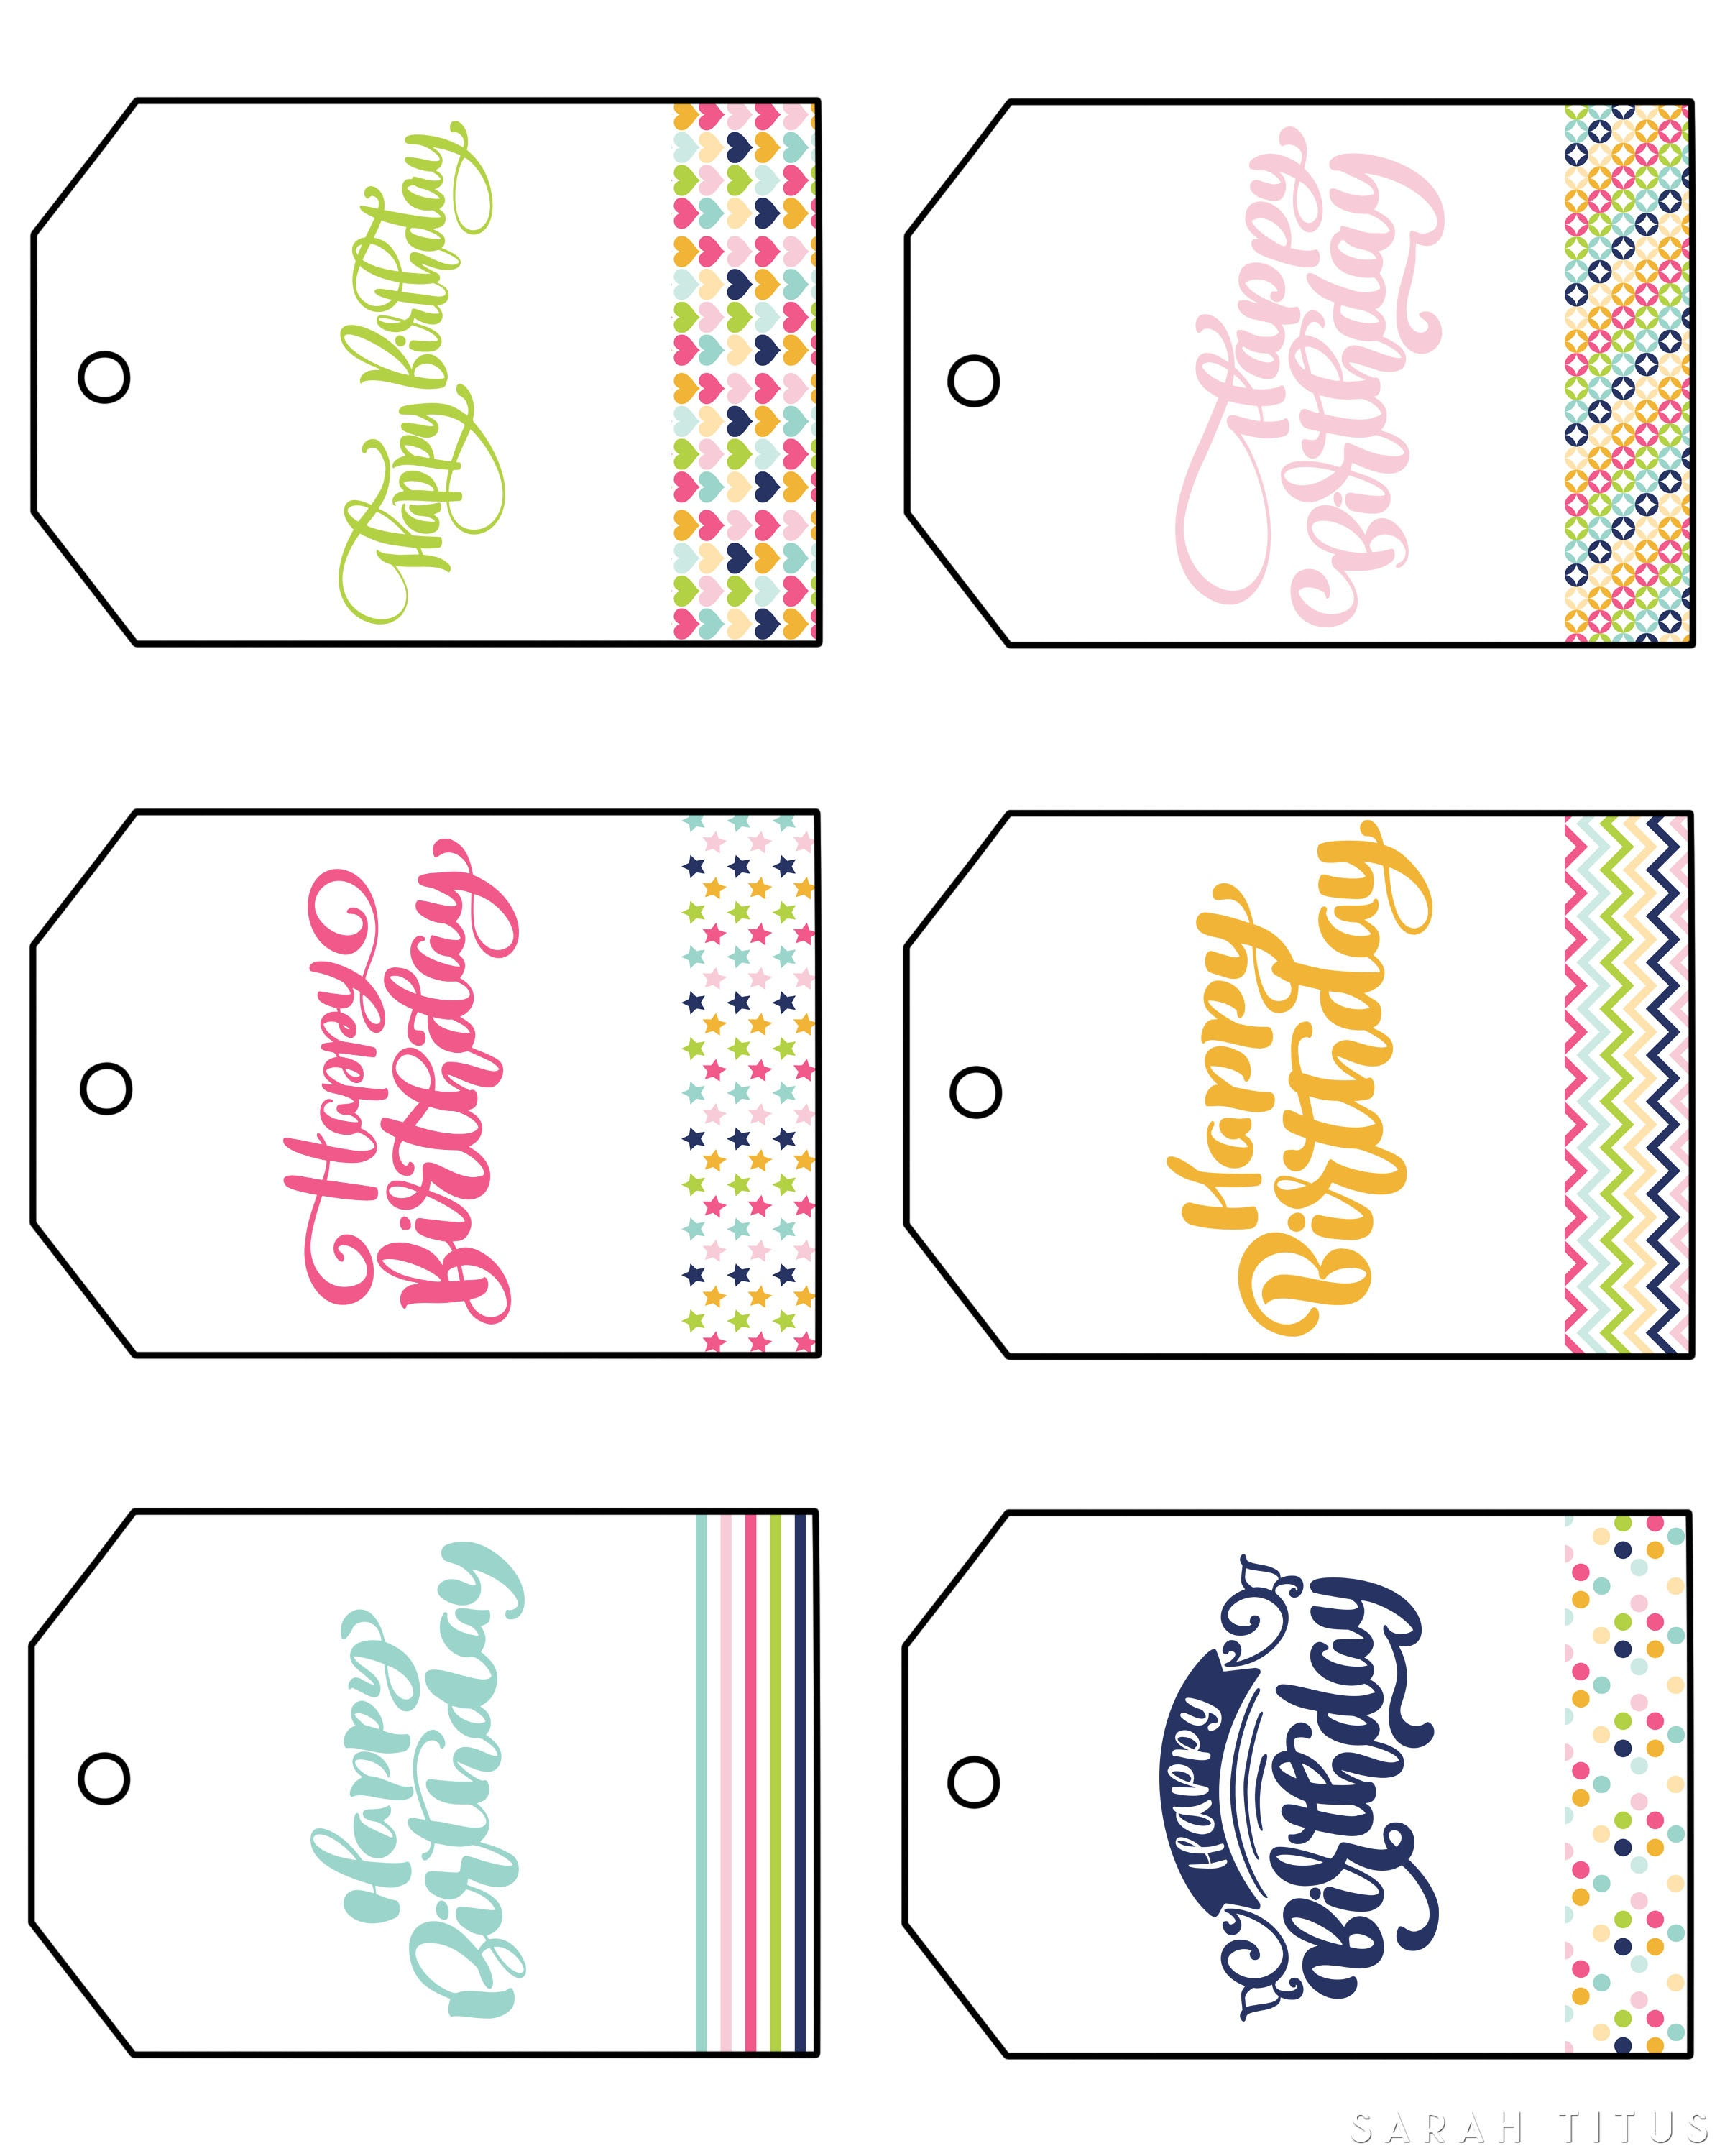 Free Printable Happy Birthday Gift Tags - Sarah Titus - Free Printable Toe Tags